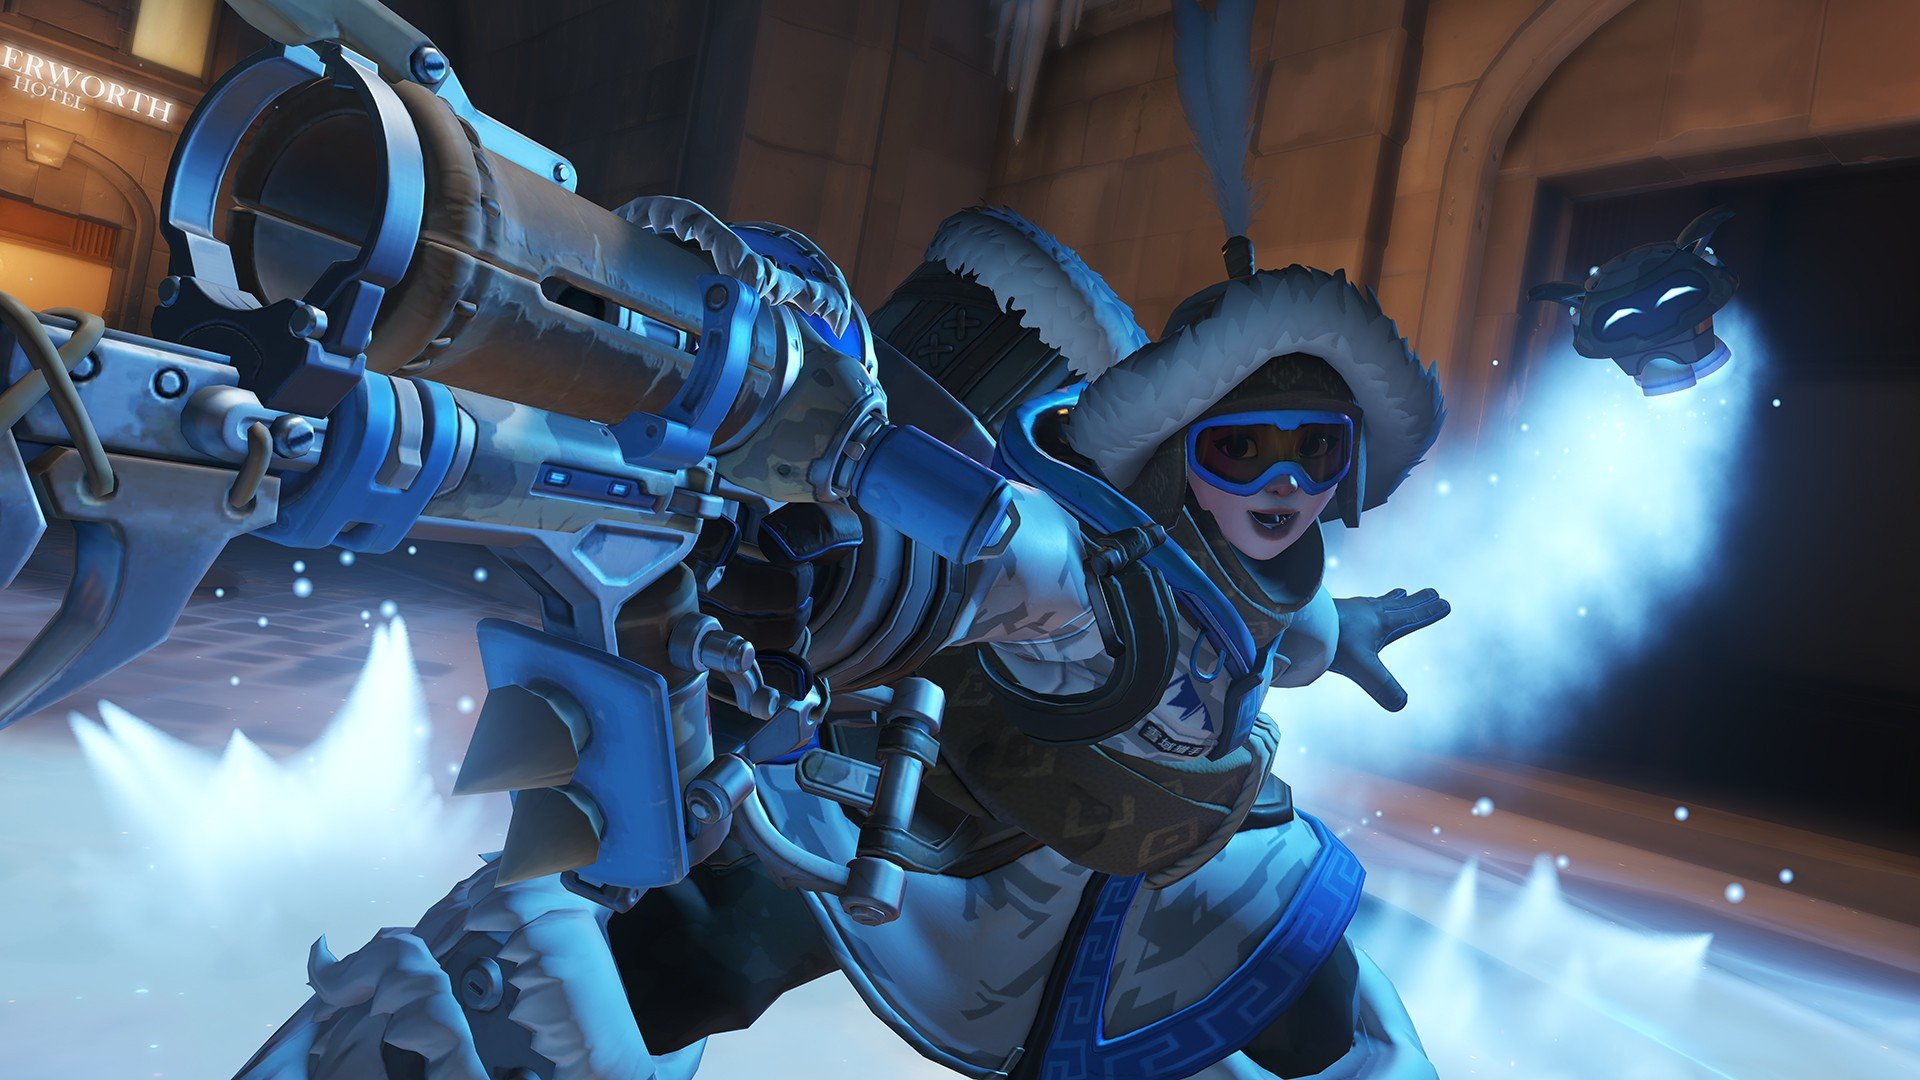 Iphone X Wallpaper 4k Live Overwatch Snow Mei Overwatch Hd Wallpapers Desktop